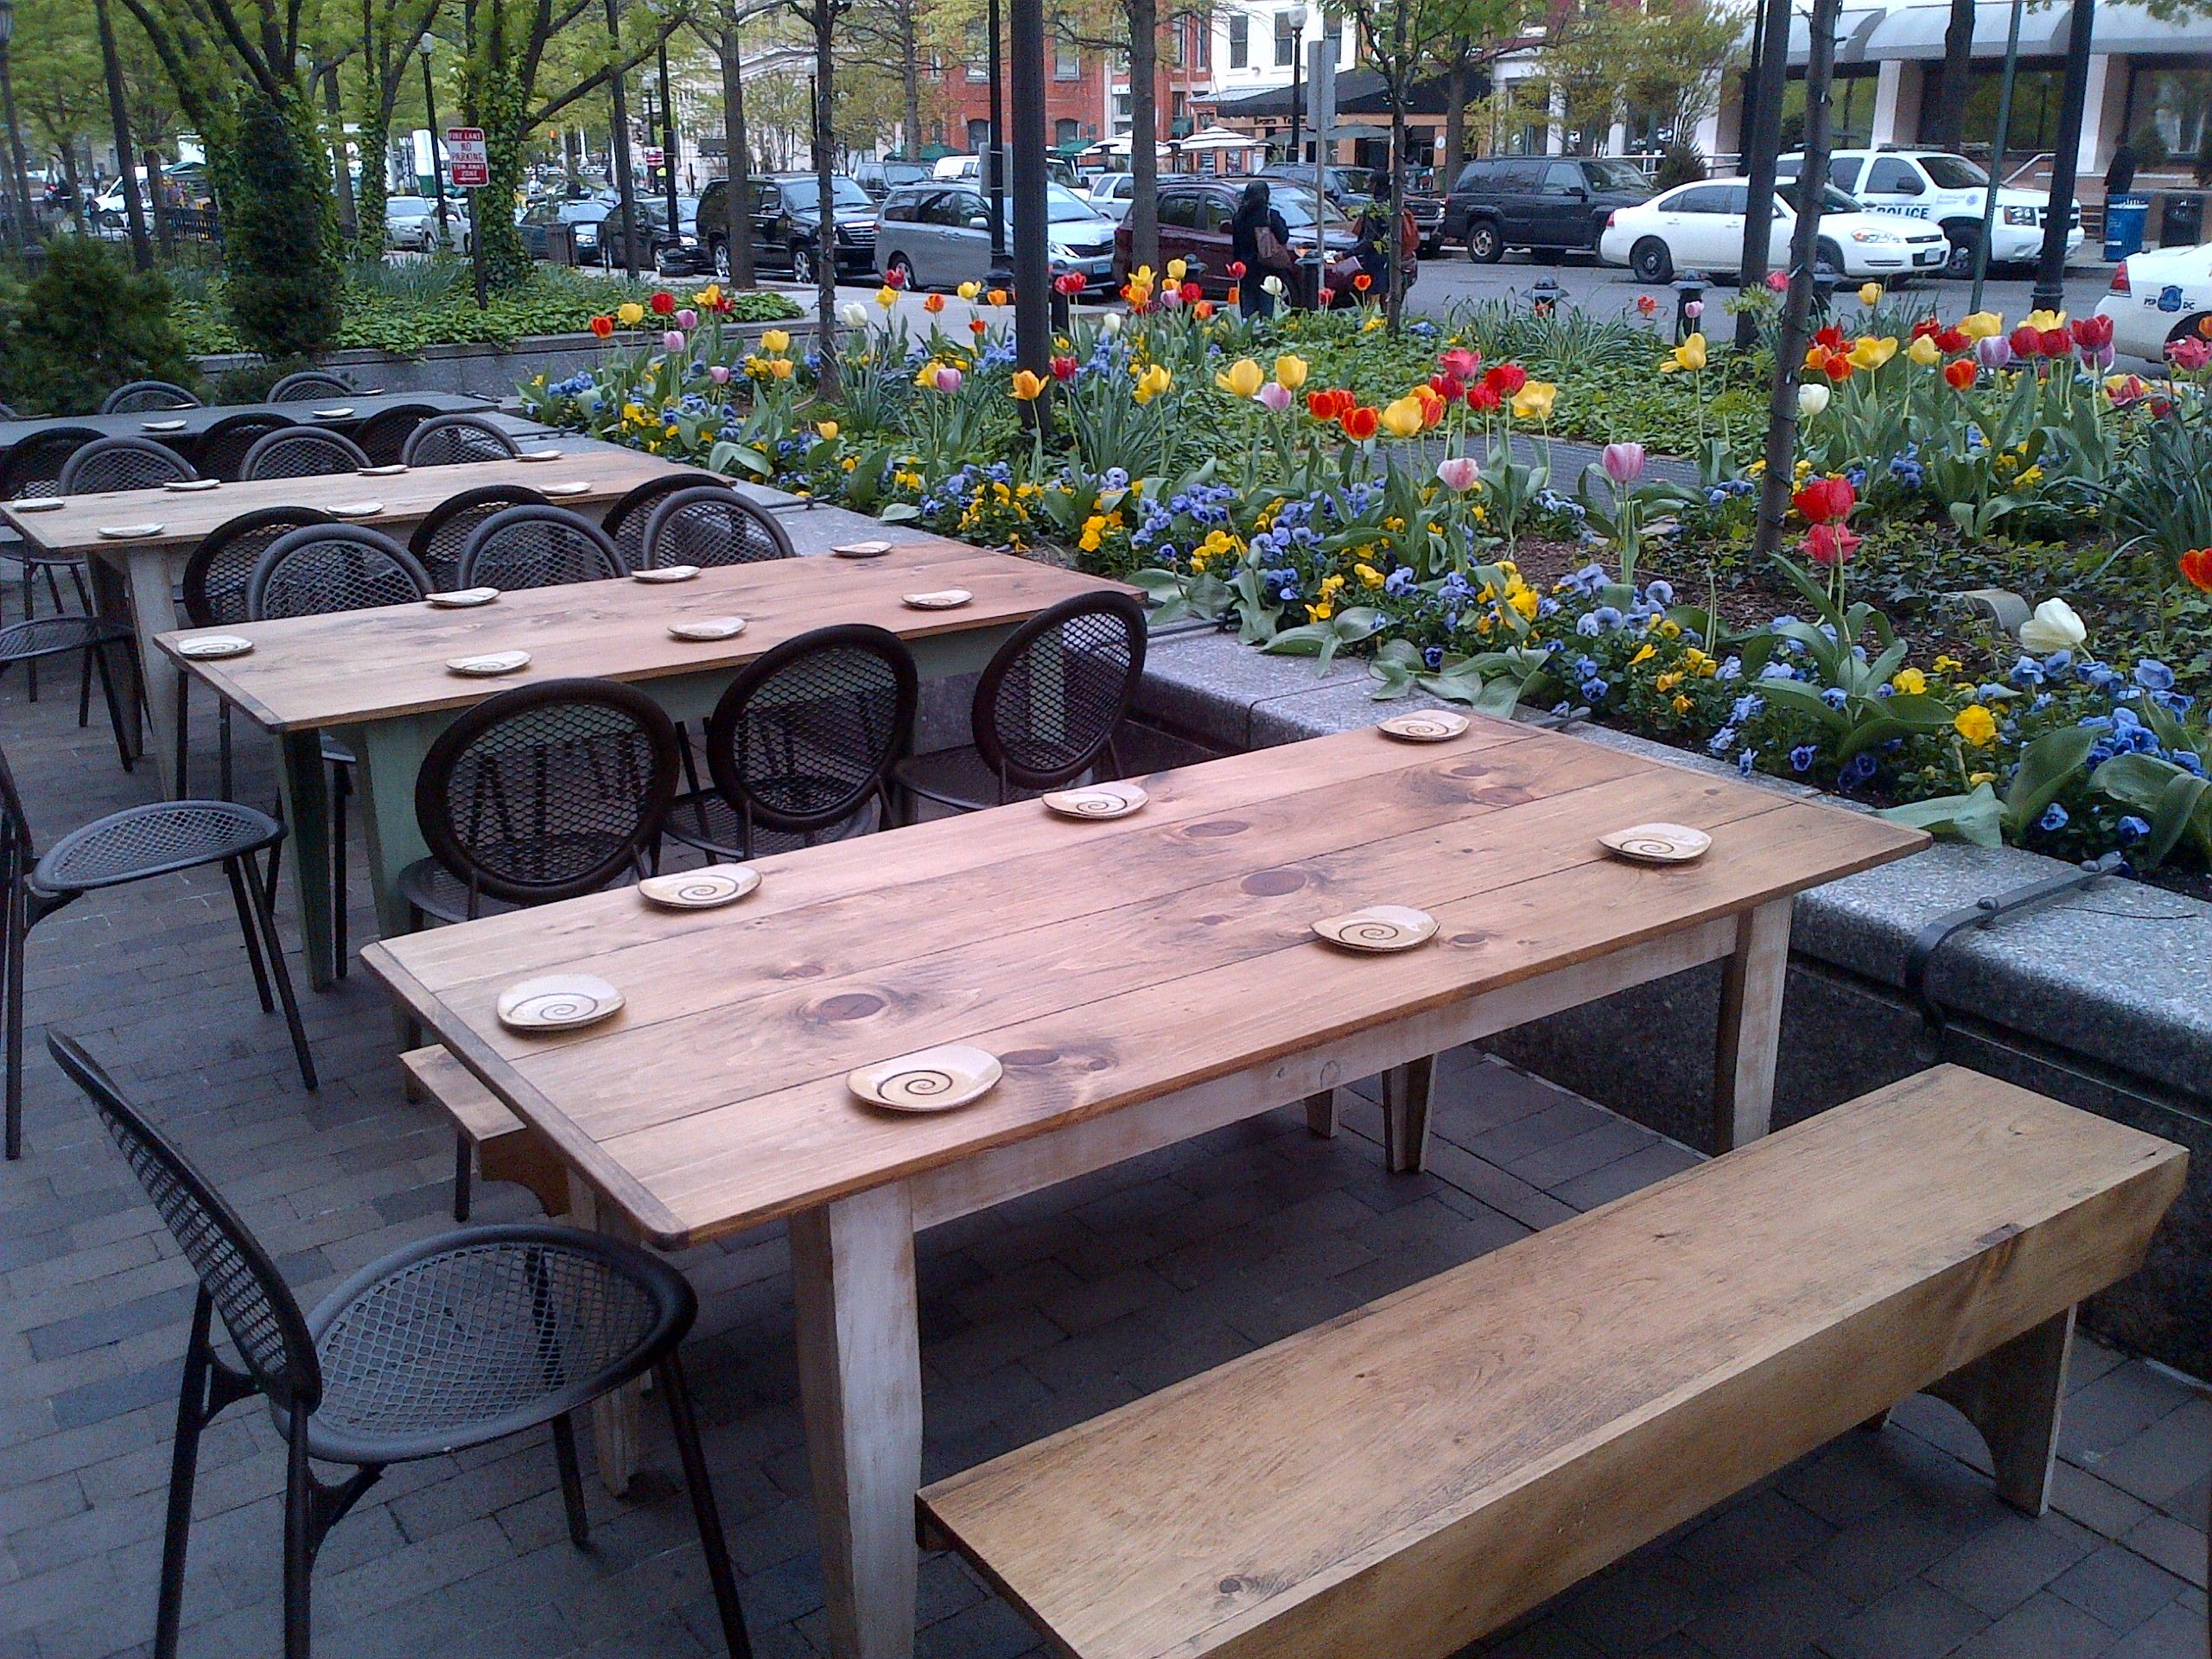 Byt Dc Outdoor Drinking Guide 2013 Cafe Seating Outdoor Cafe